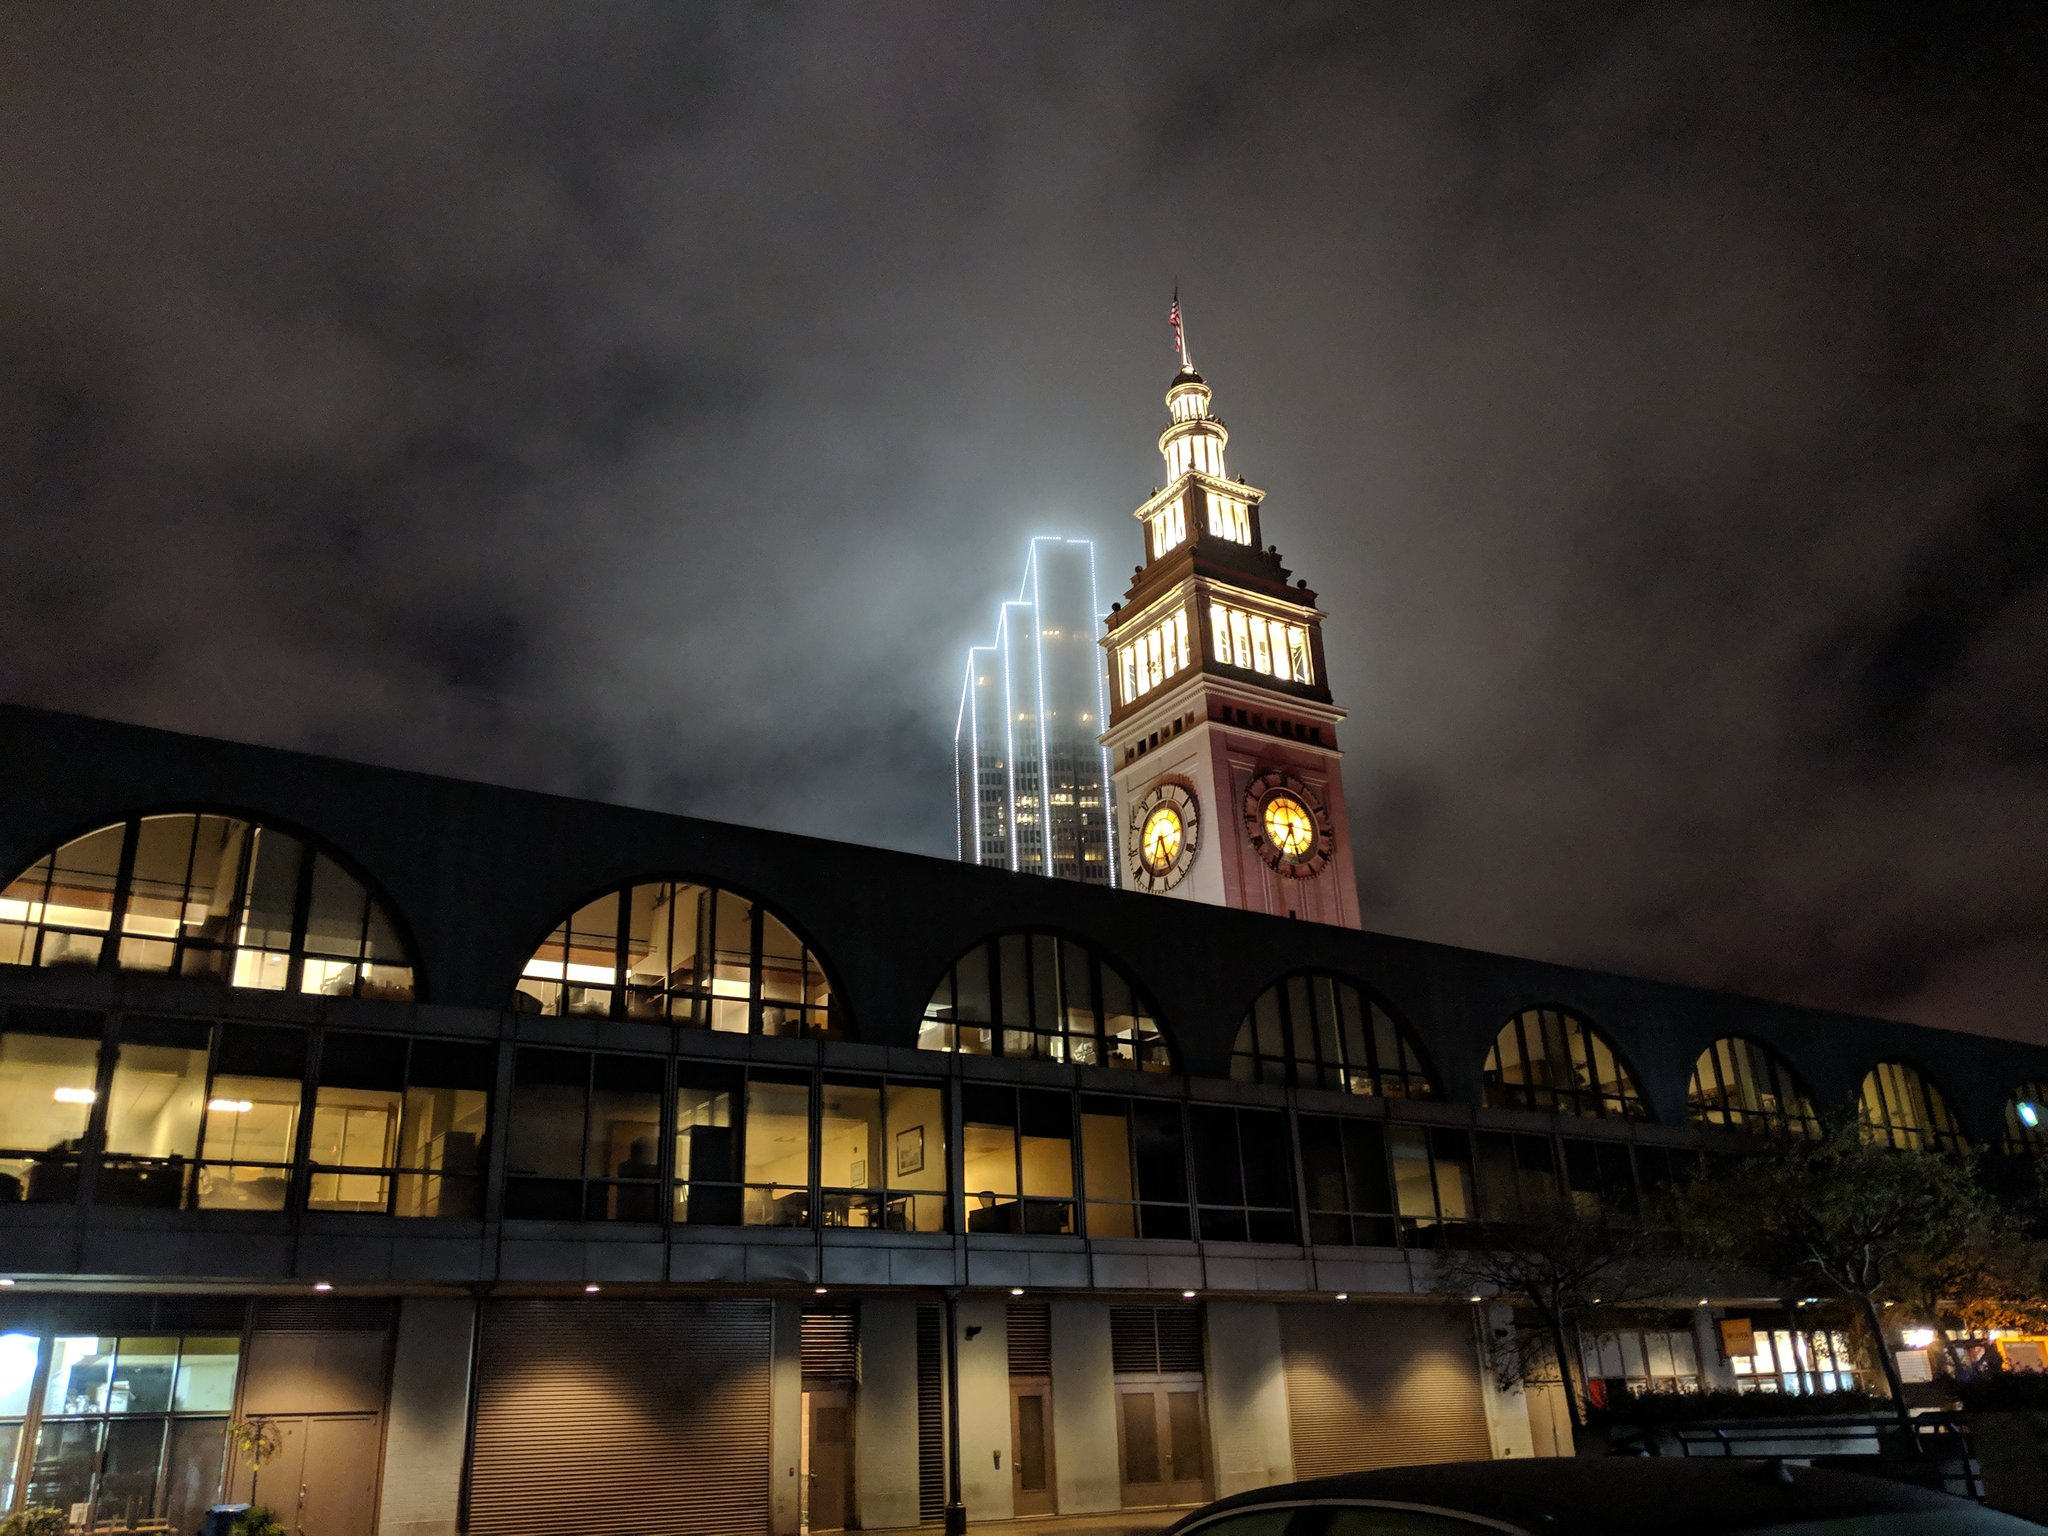 Check out the fog rolling over the San Francisco Ferry Building. #bayarea https://t.co/GACC4BdloM